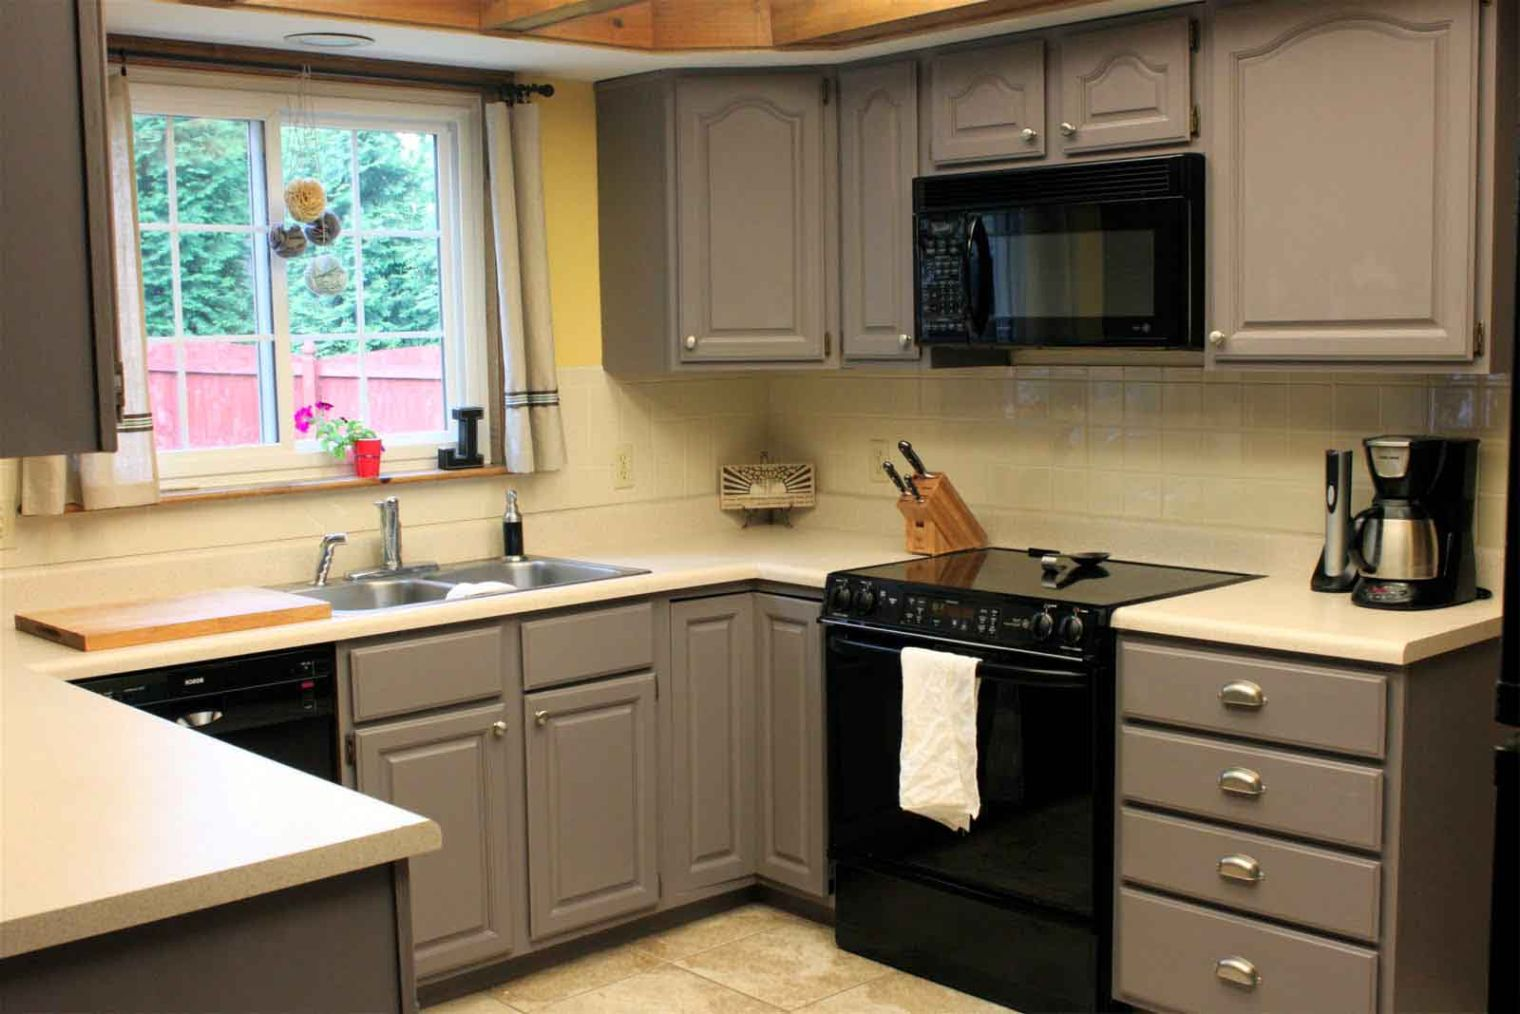 Grey painted kitchen cabinets in small kitchen space for Small kitchen cabinets